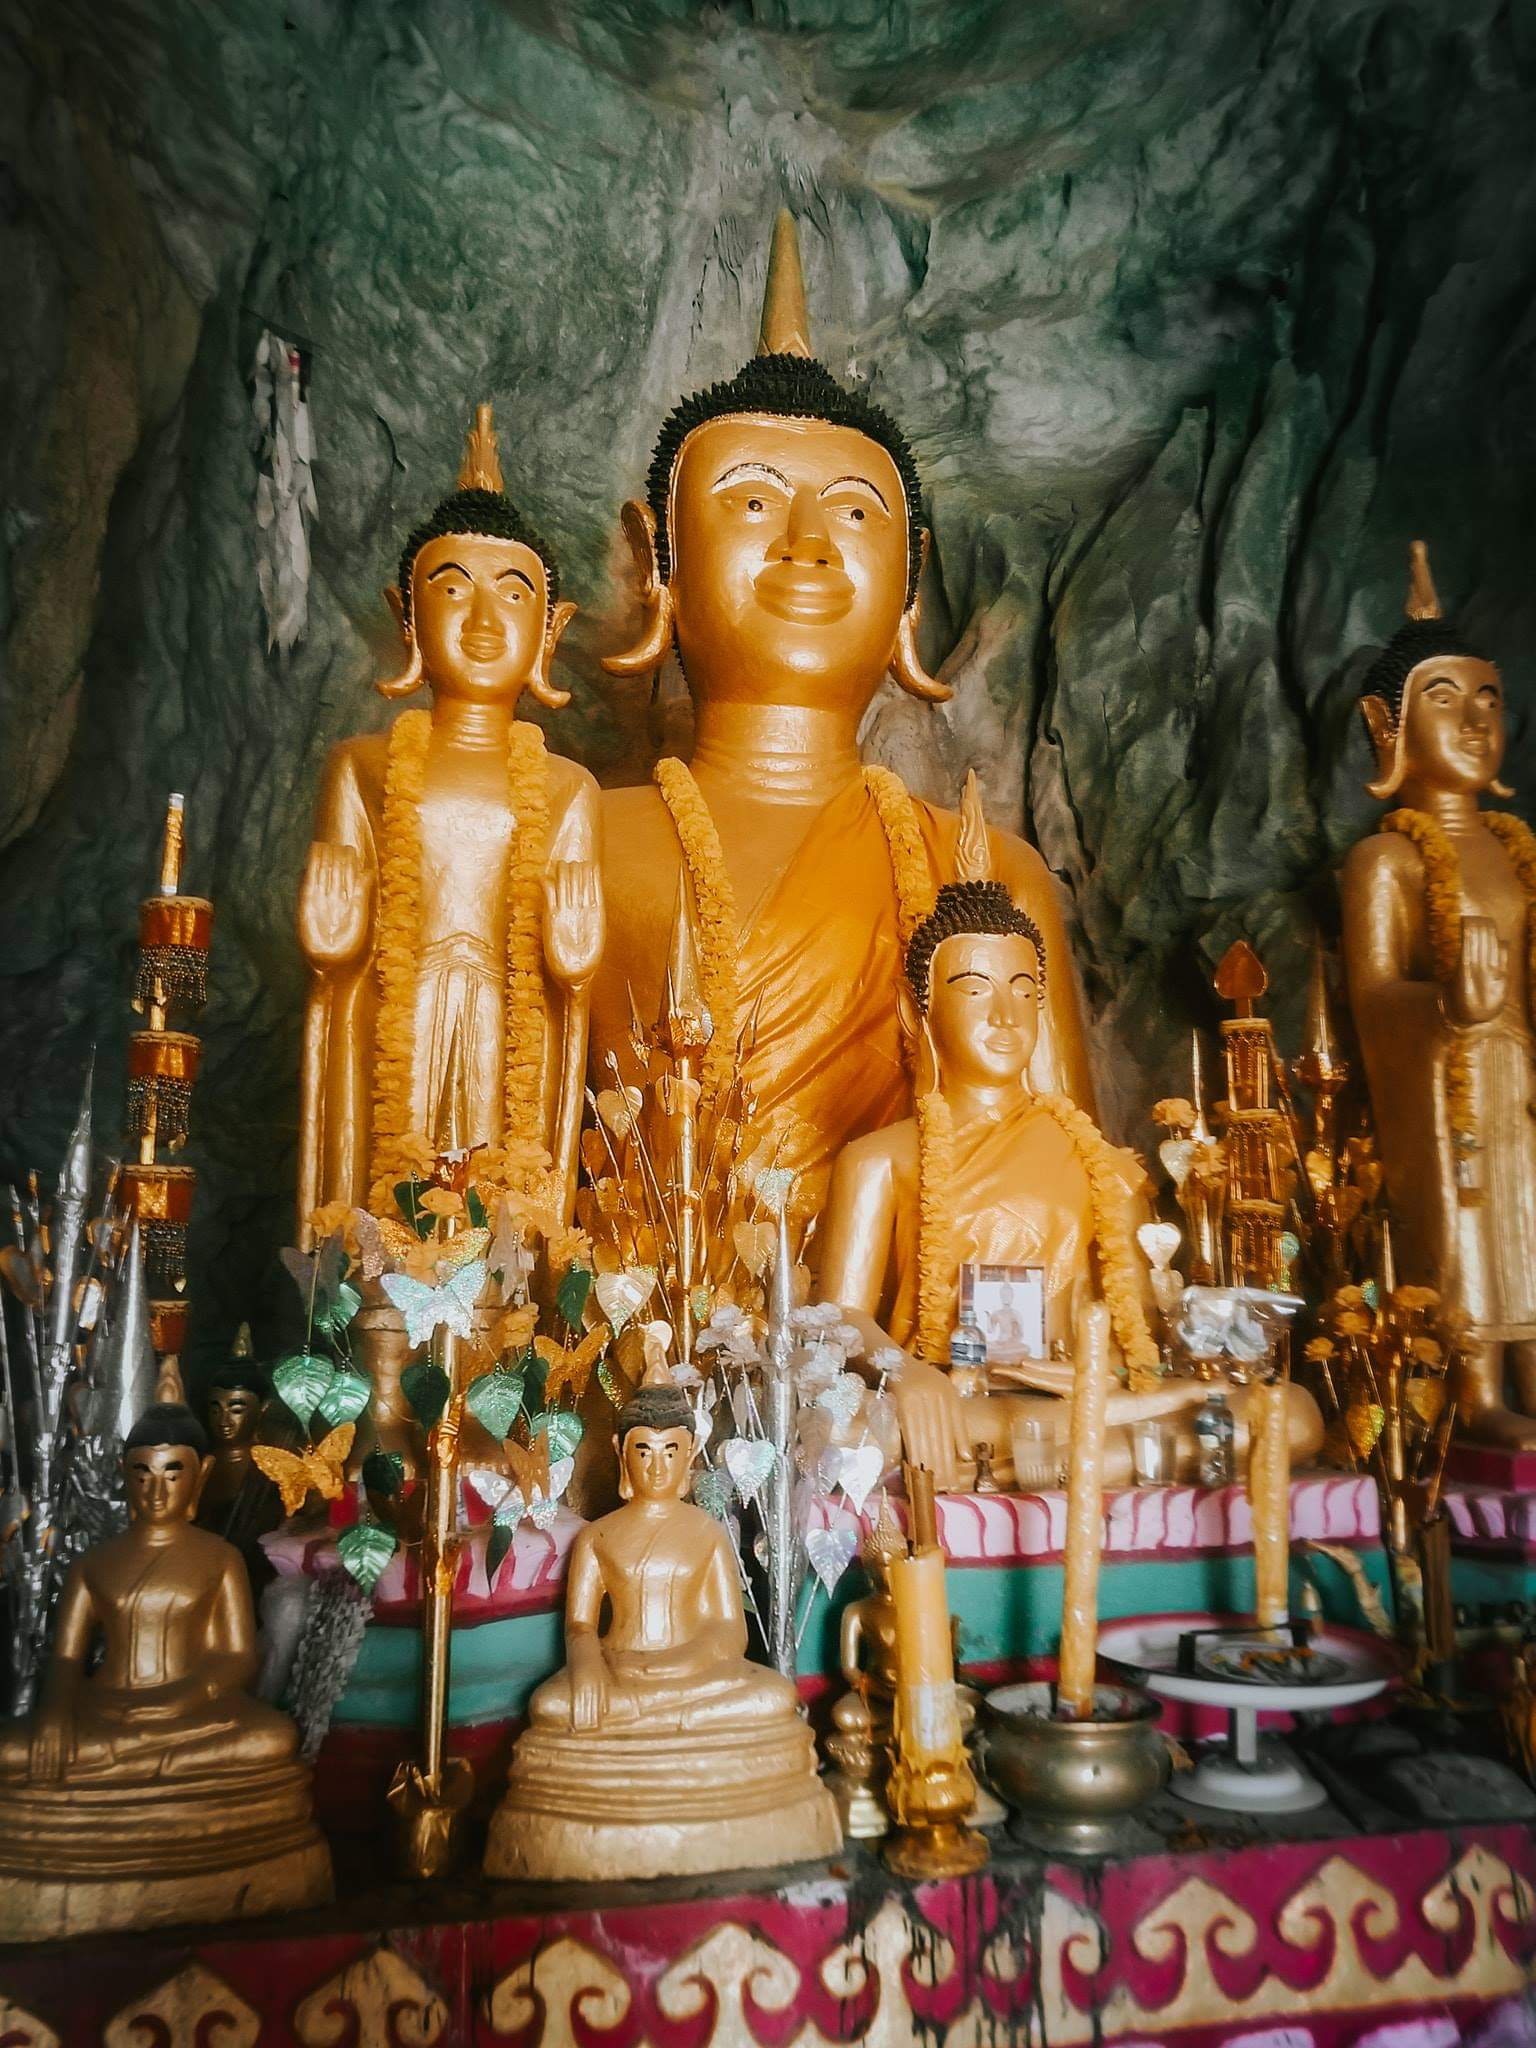 Statues in the Elephant Cave